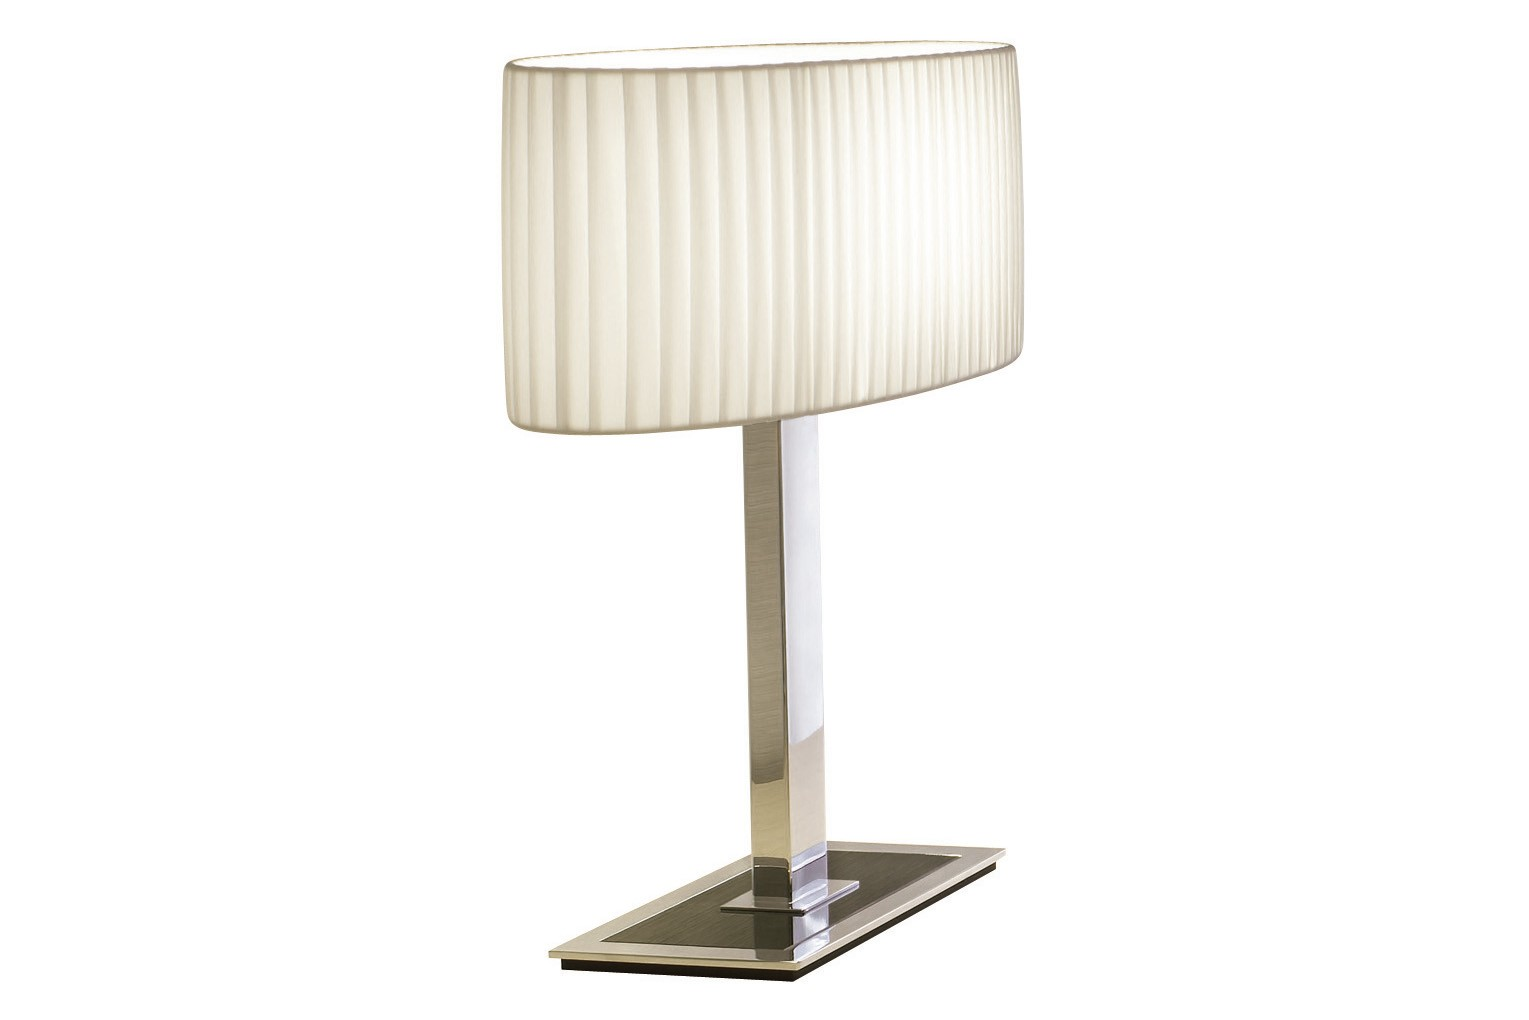 Oval M Table Lamp Nickel Black Glass, White Translucent Ribbon, 59cm